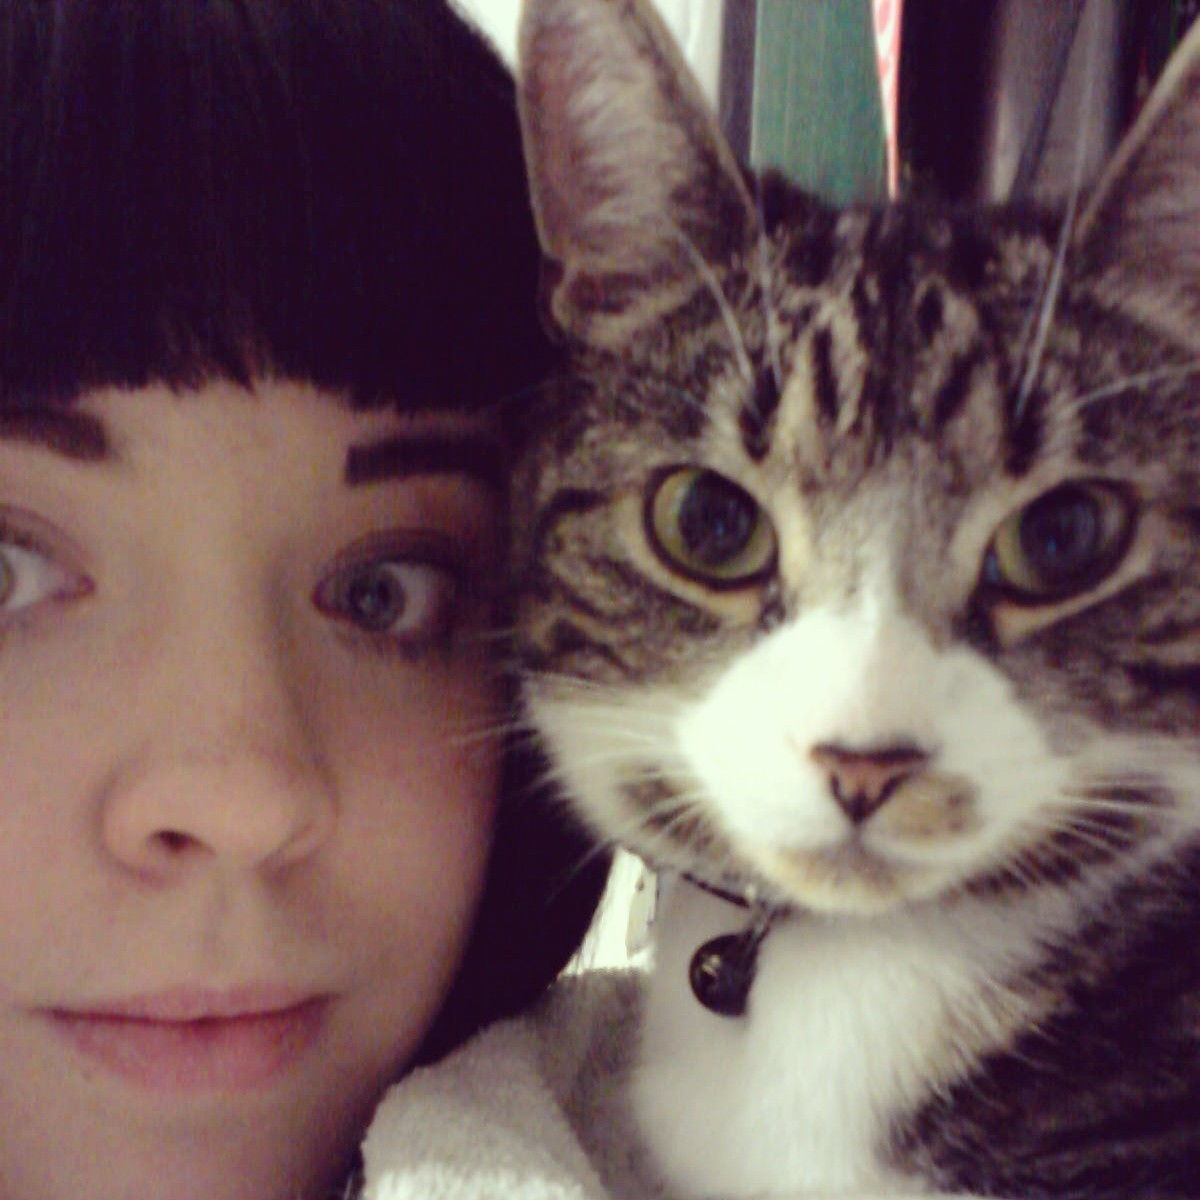 Haha, I really need a life. Selfies with my cat on a Friday night.